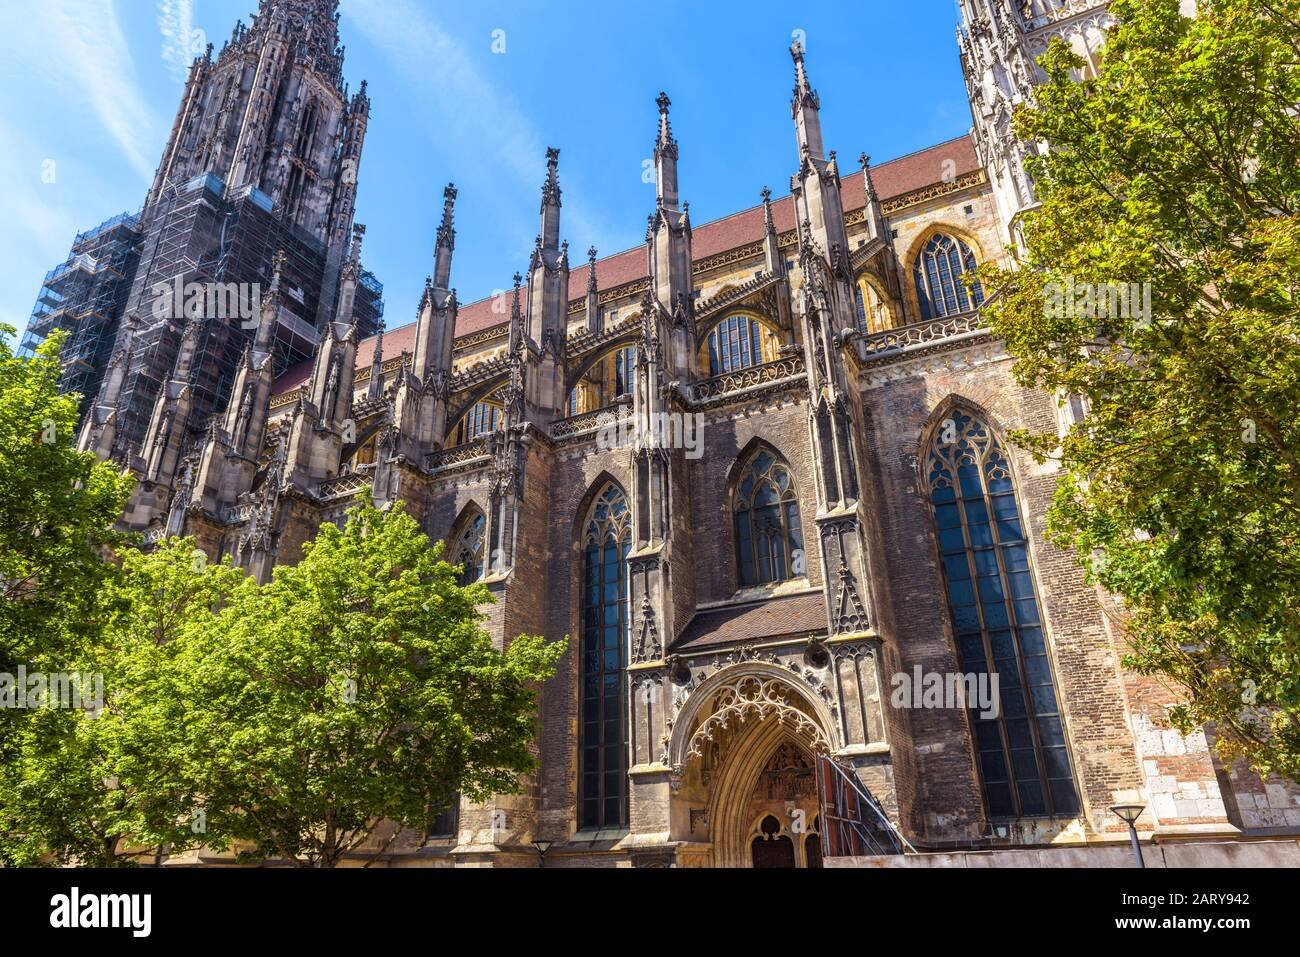 Ulm Minster or Cathedral of Ulm city, Germany. It is a famous landmark of Ulm. Ornate facade of Gothic church in summer. Scenery of medieval European Stock Photo